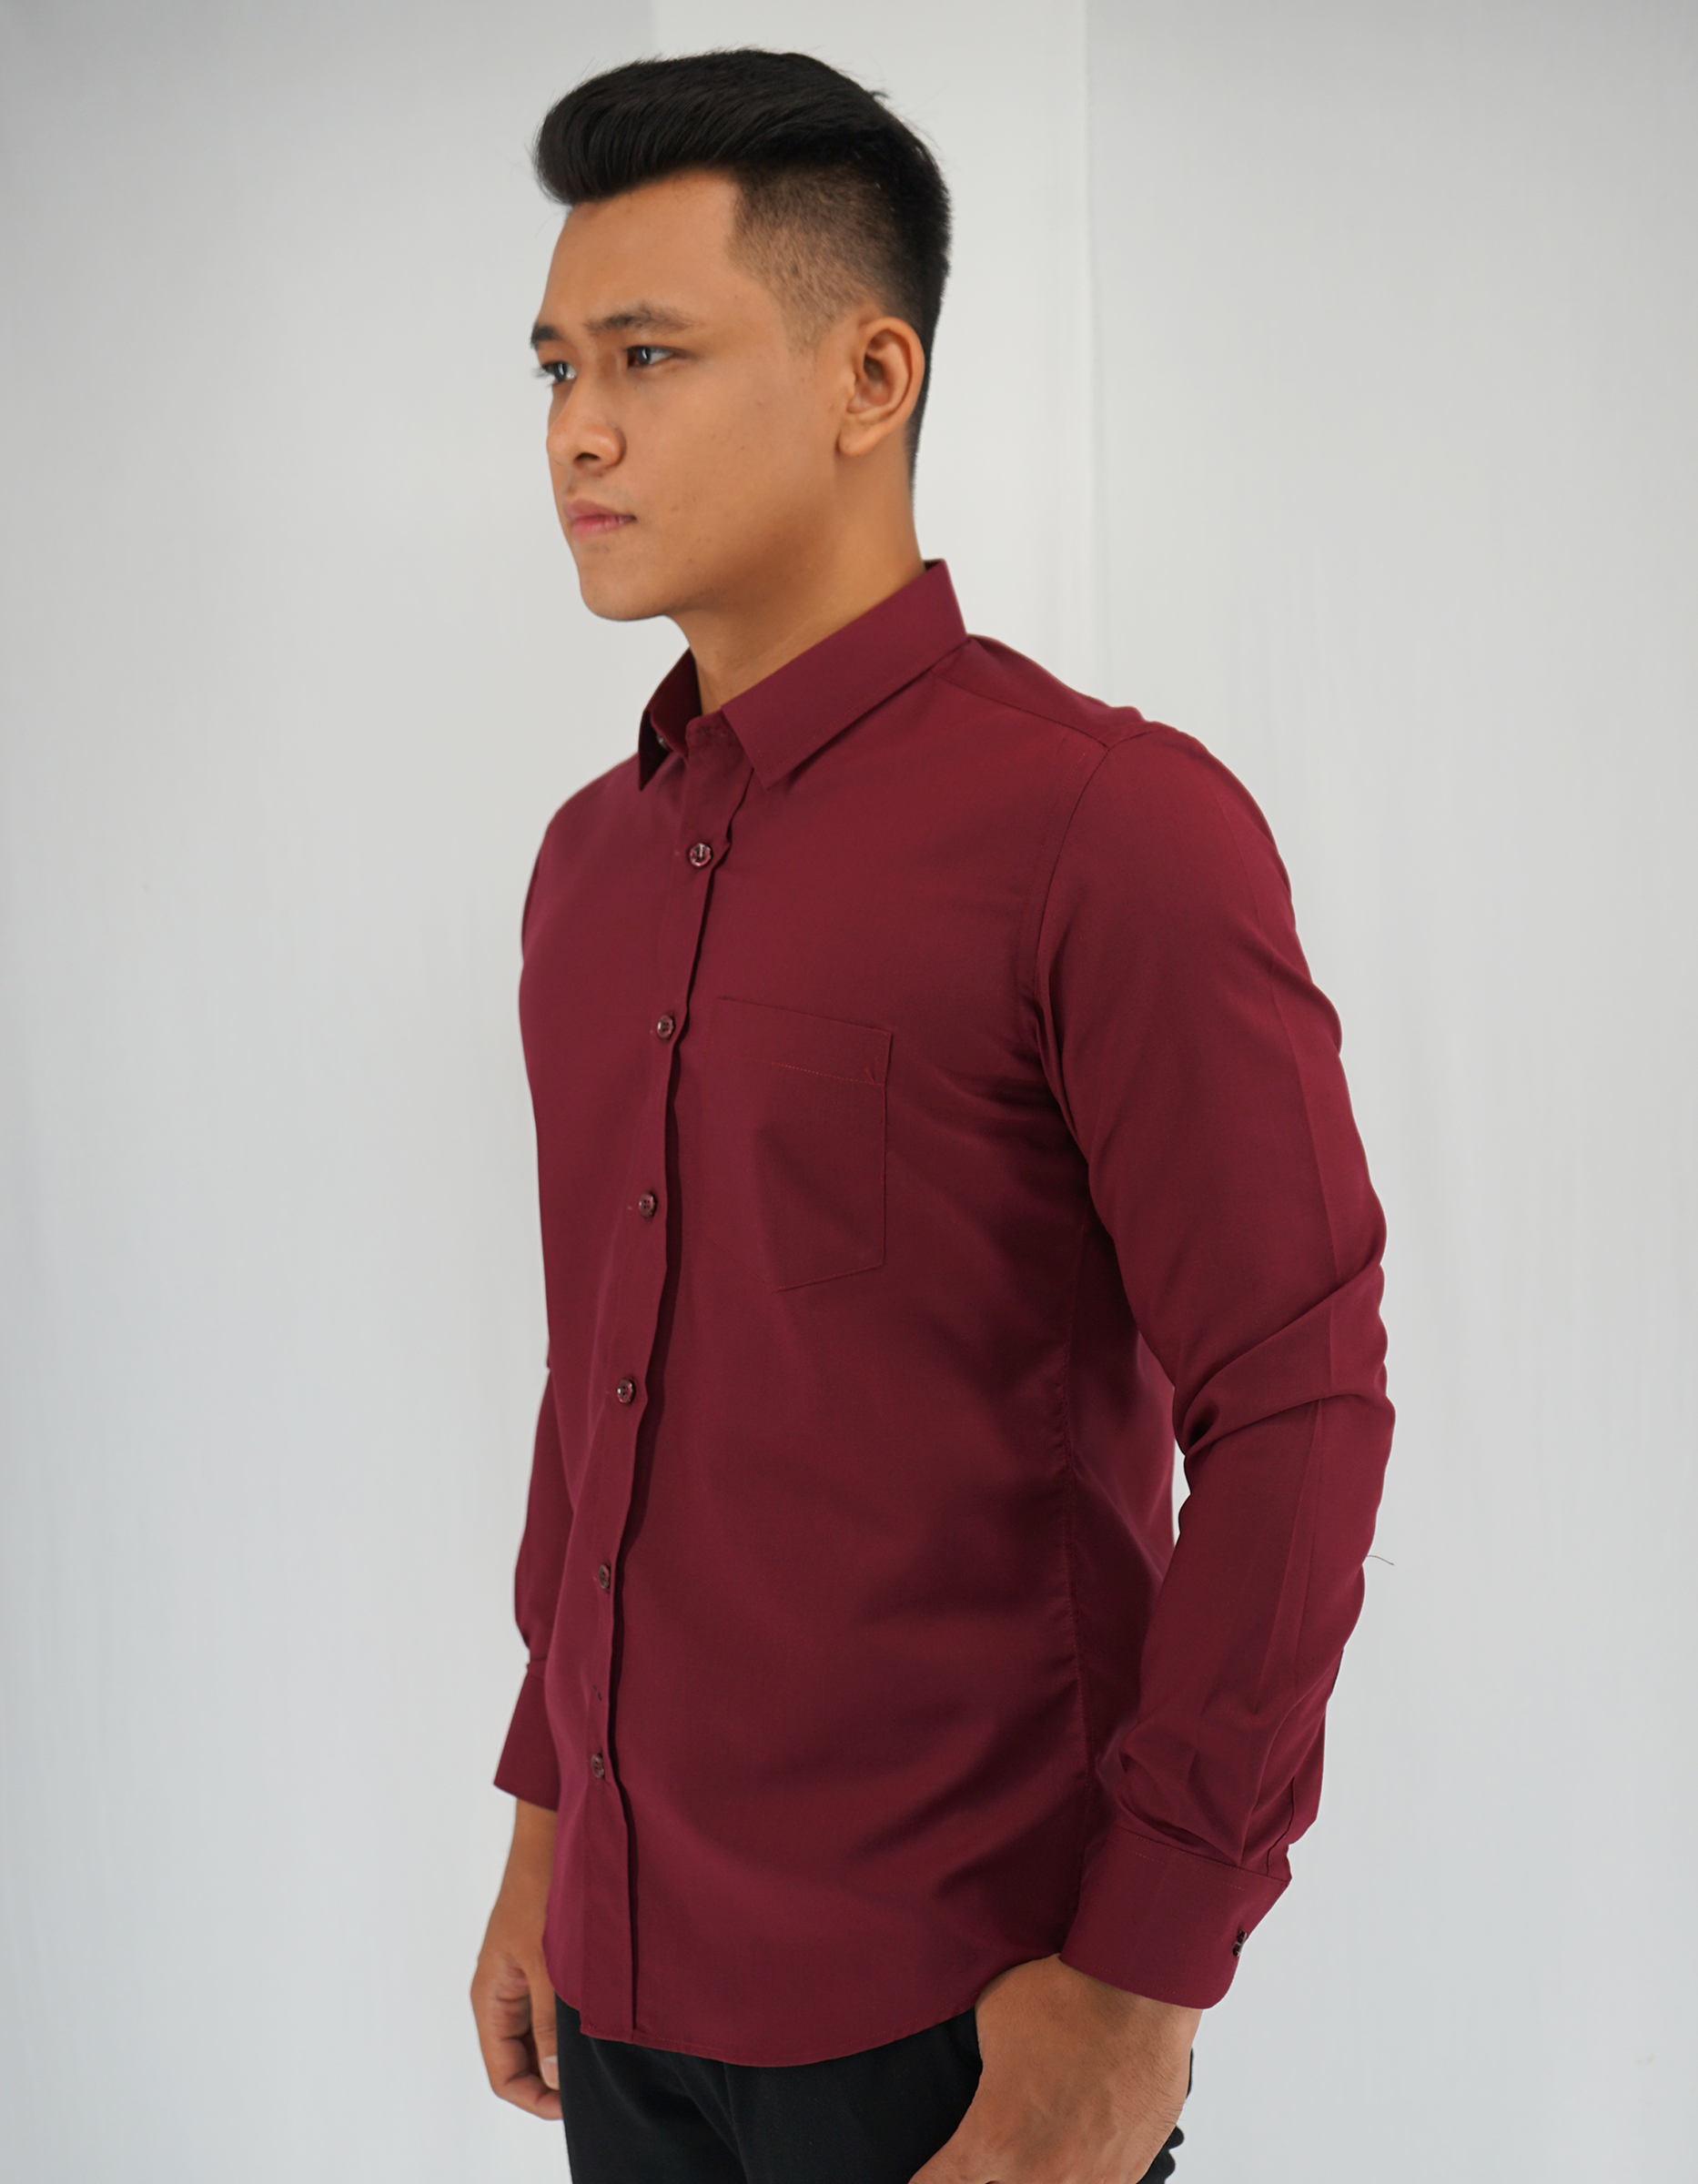 UA BOUTIQUE - The Style Begins Here | Featured Collections - WORKING ATTIRE